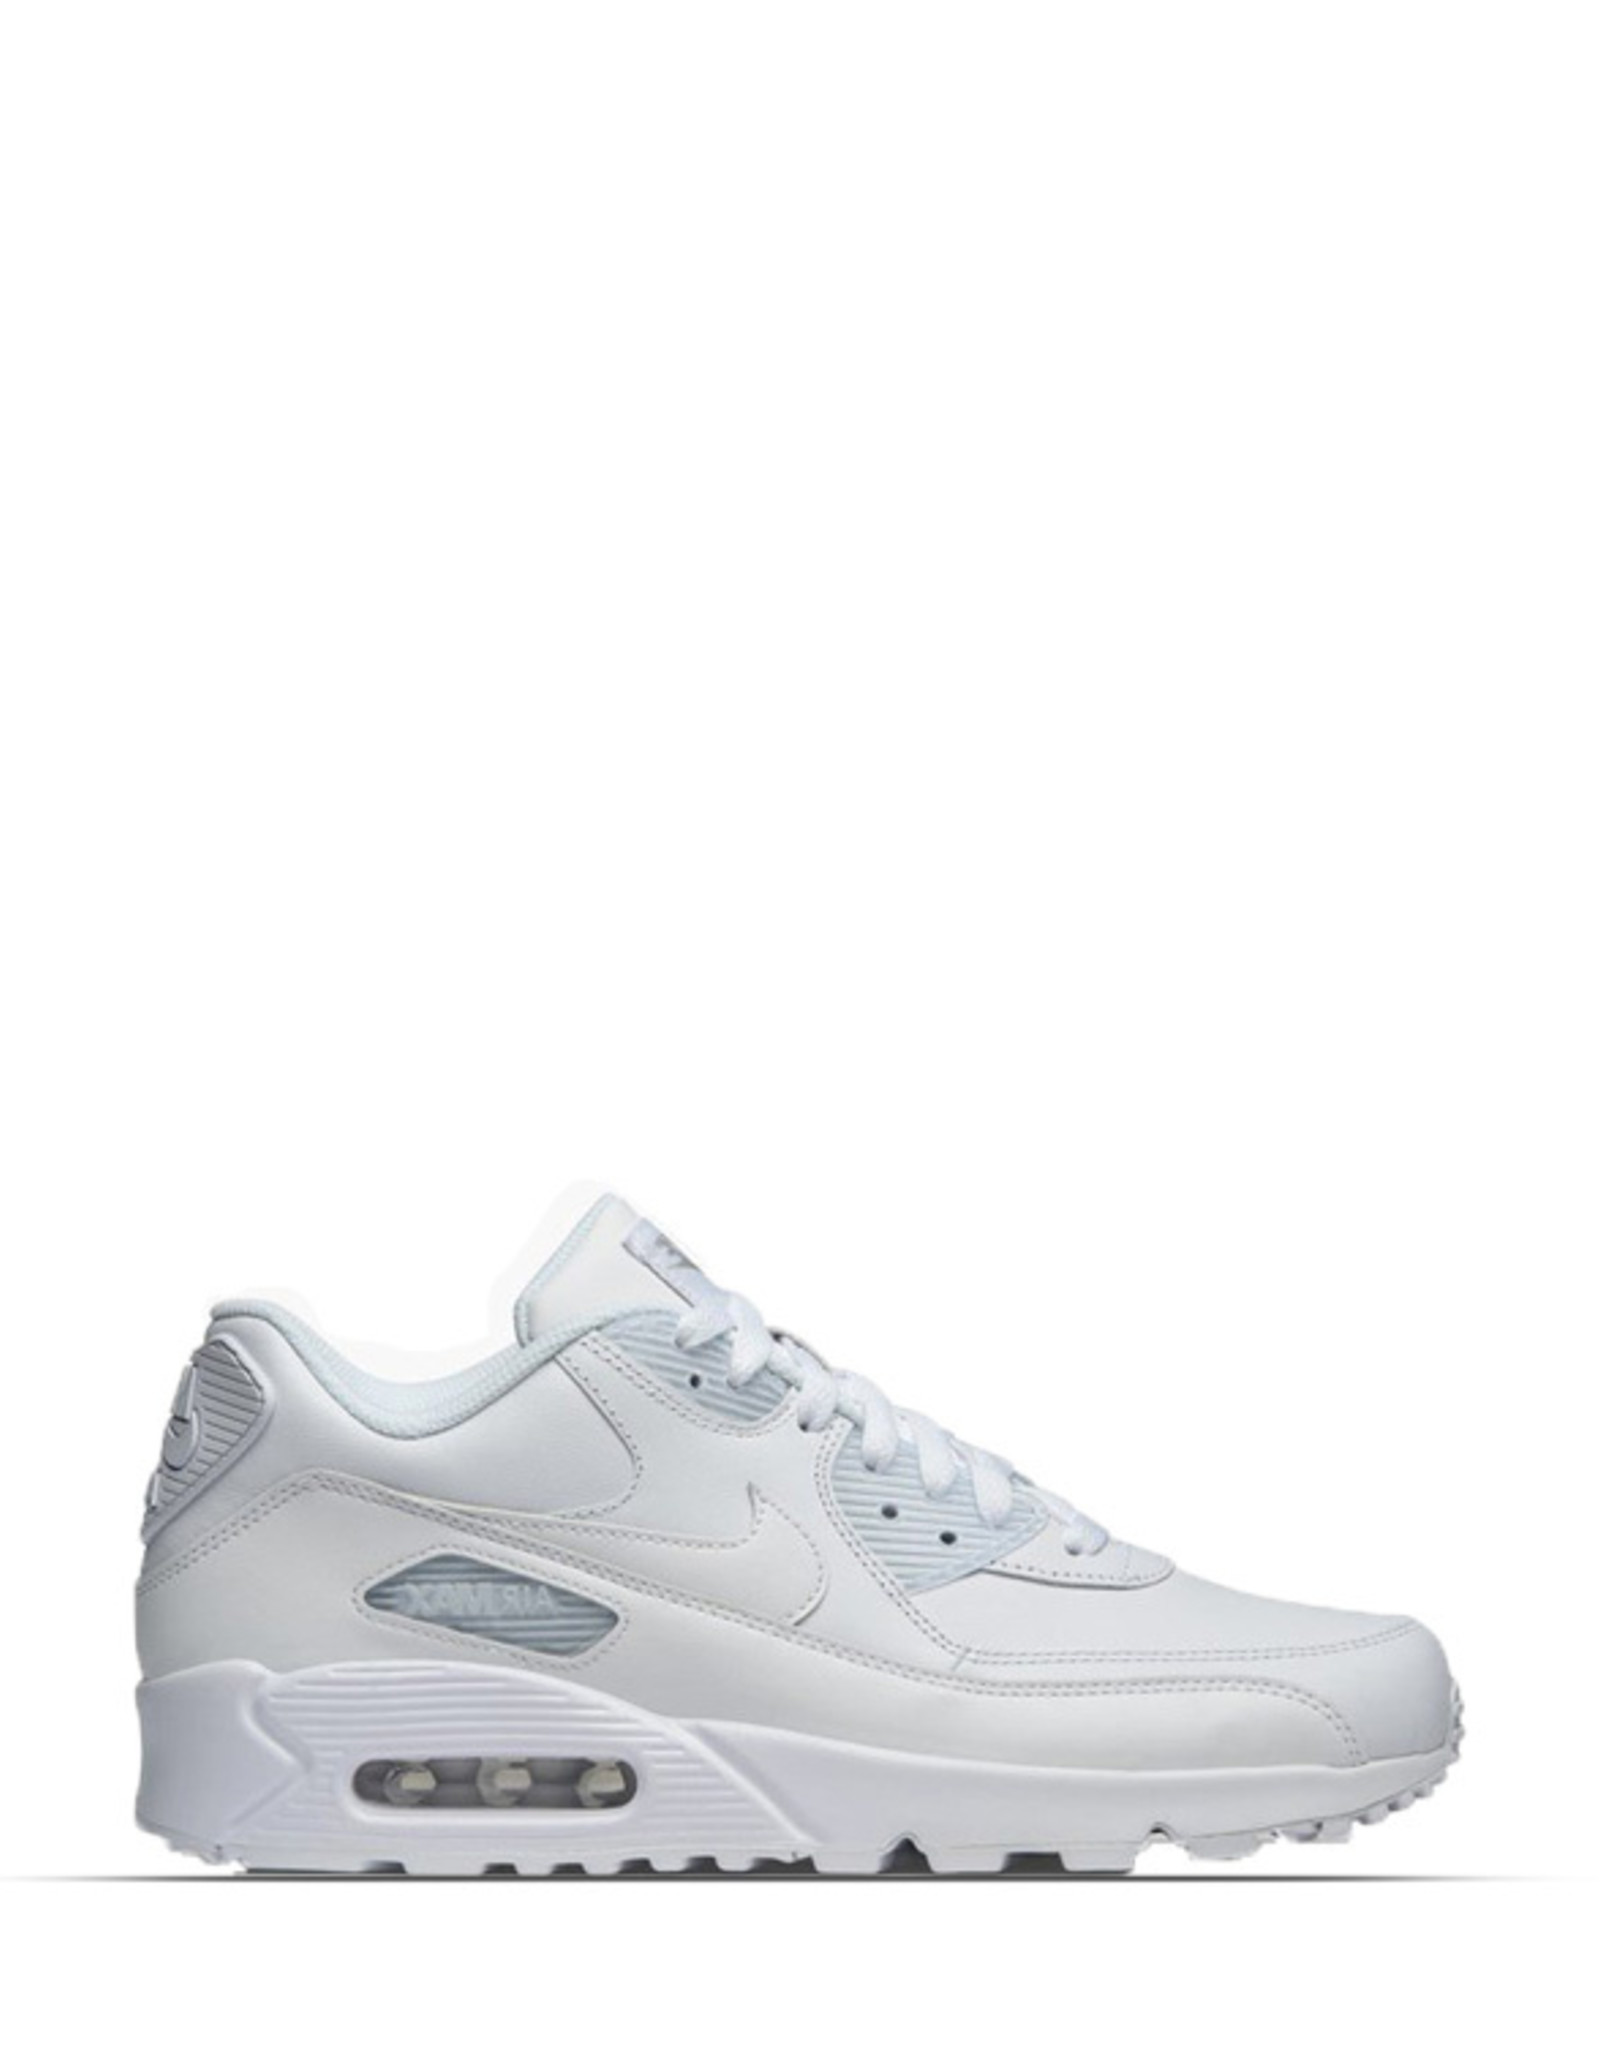 NIKE AIR MAX 90 TRIPLE WHITE LTR